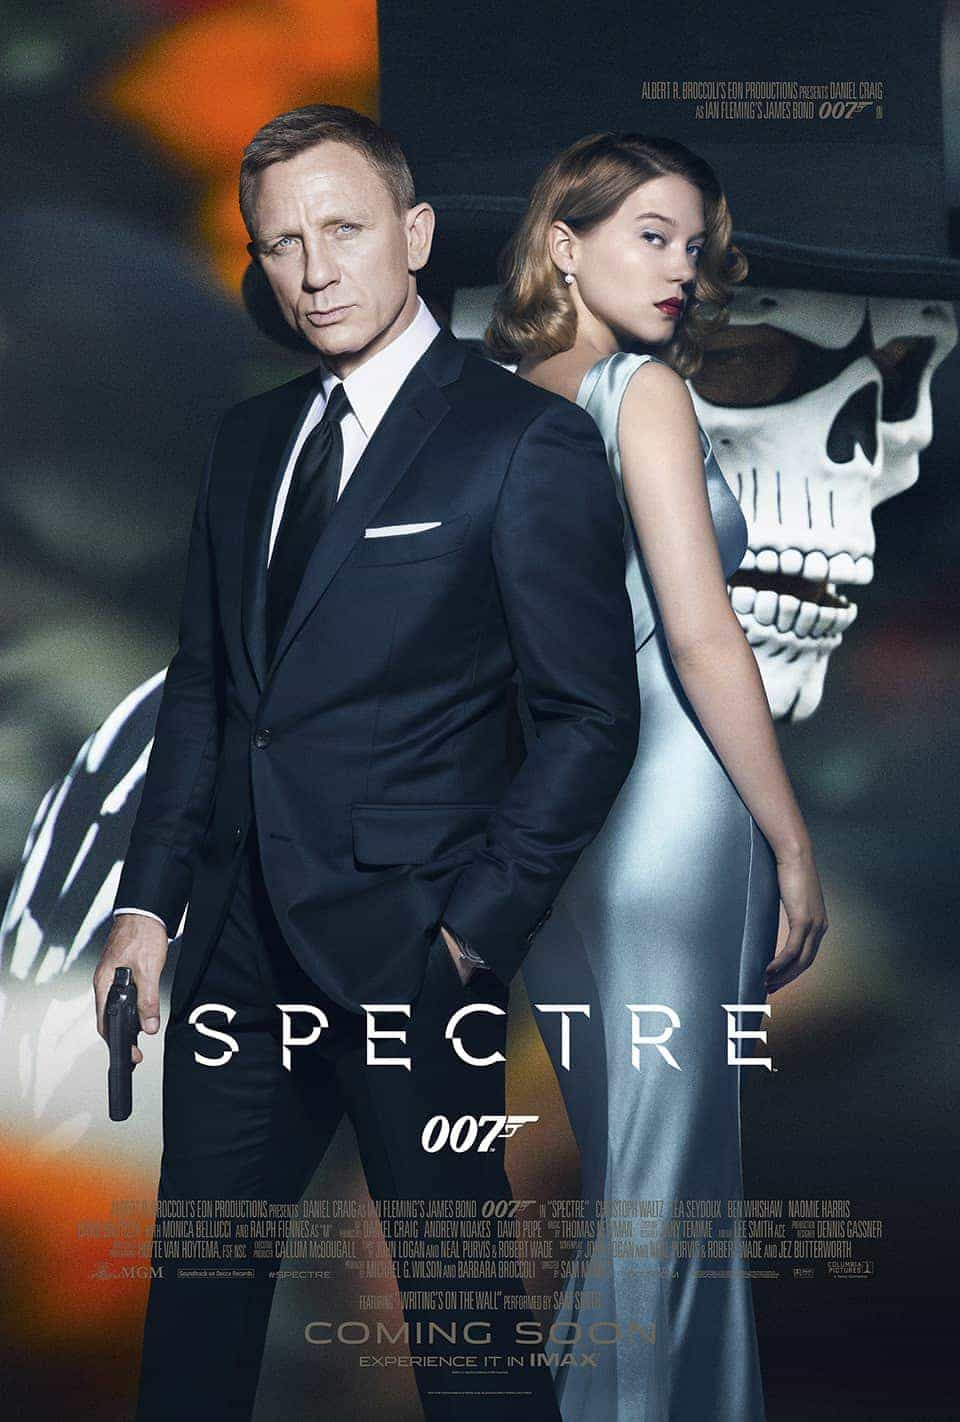 Spectre is the title of the new Bond film.